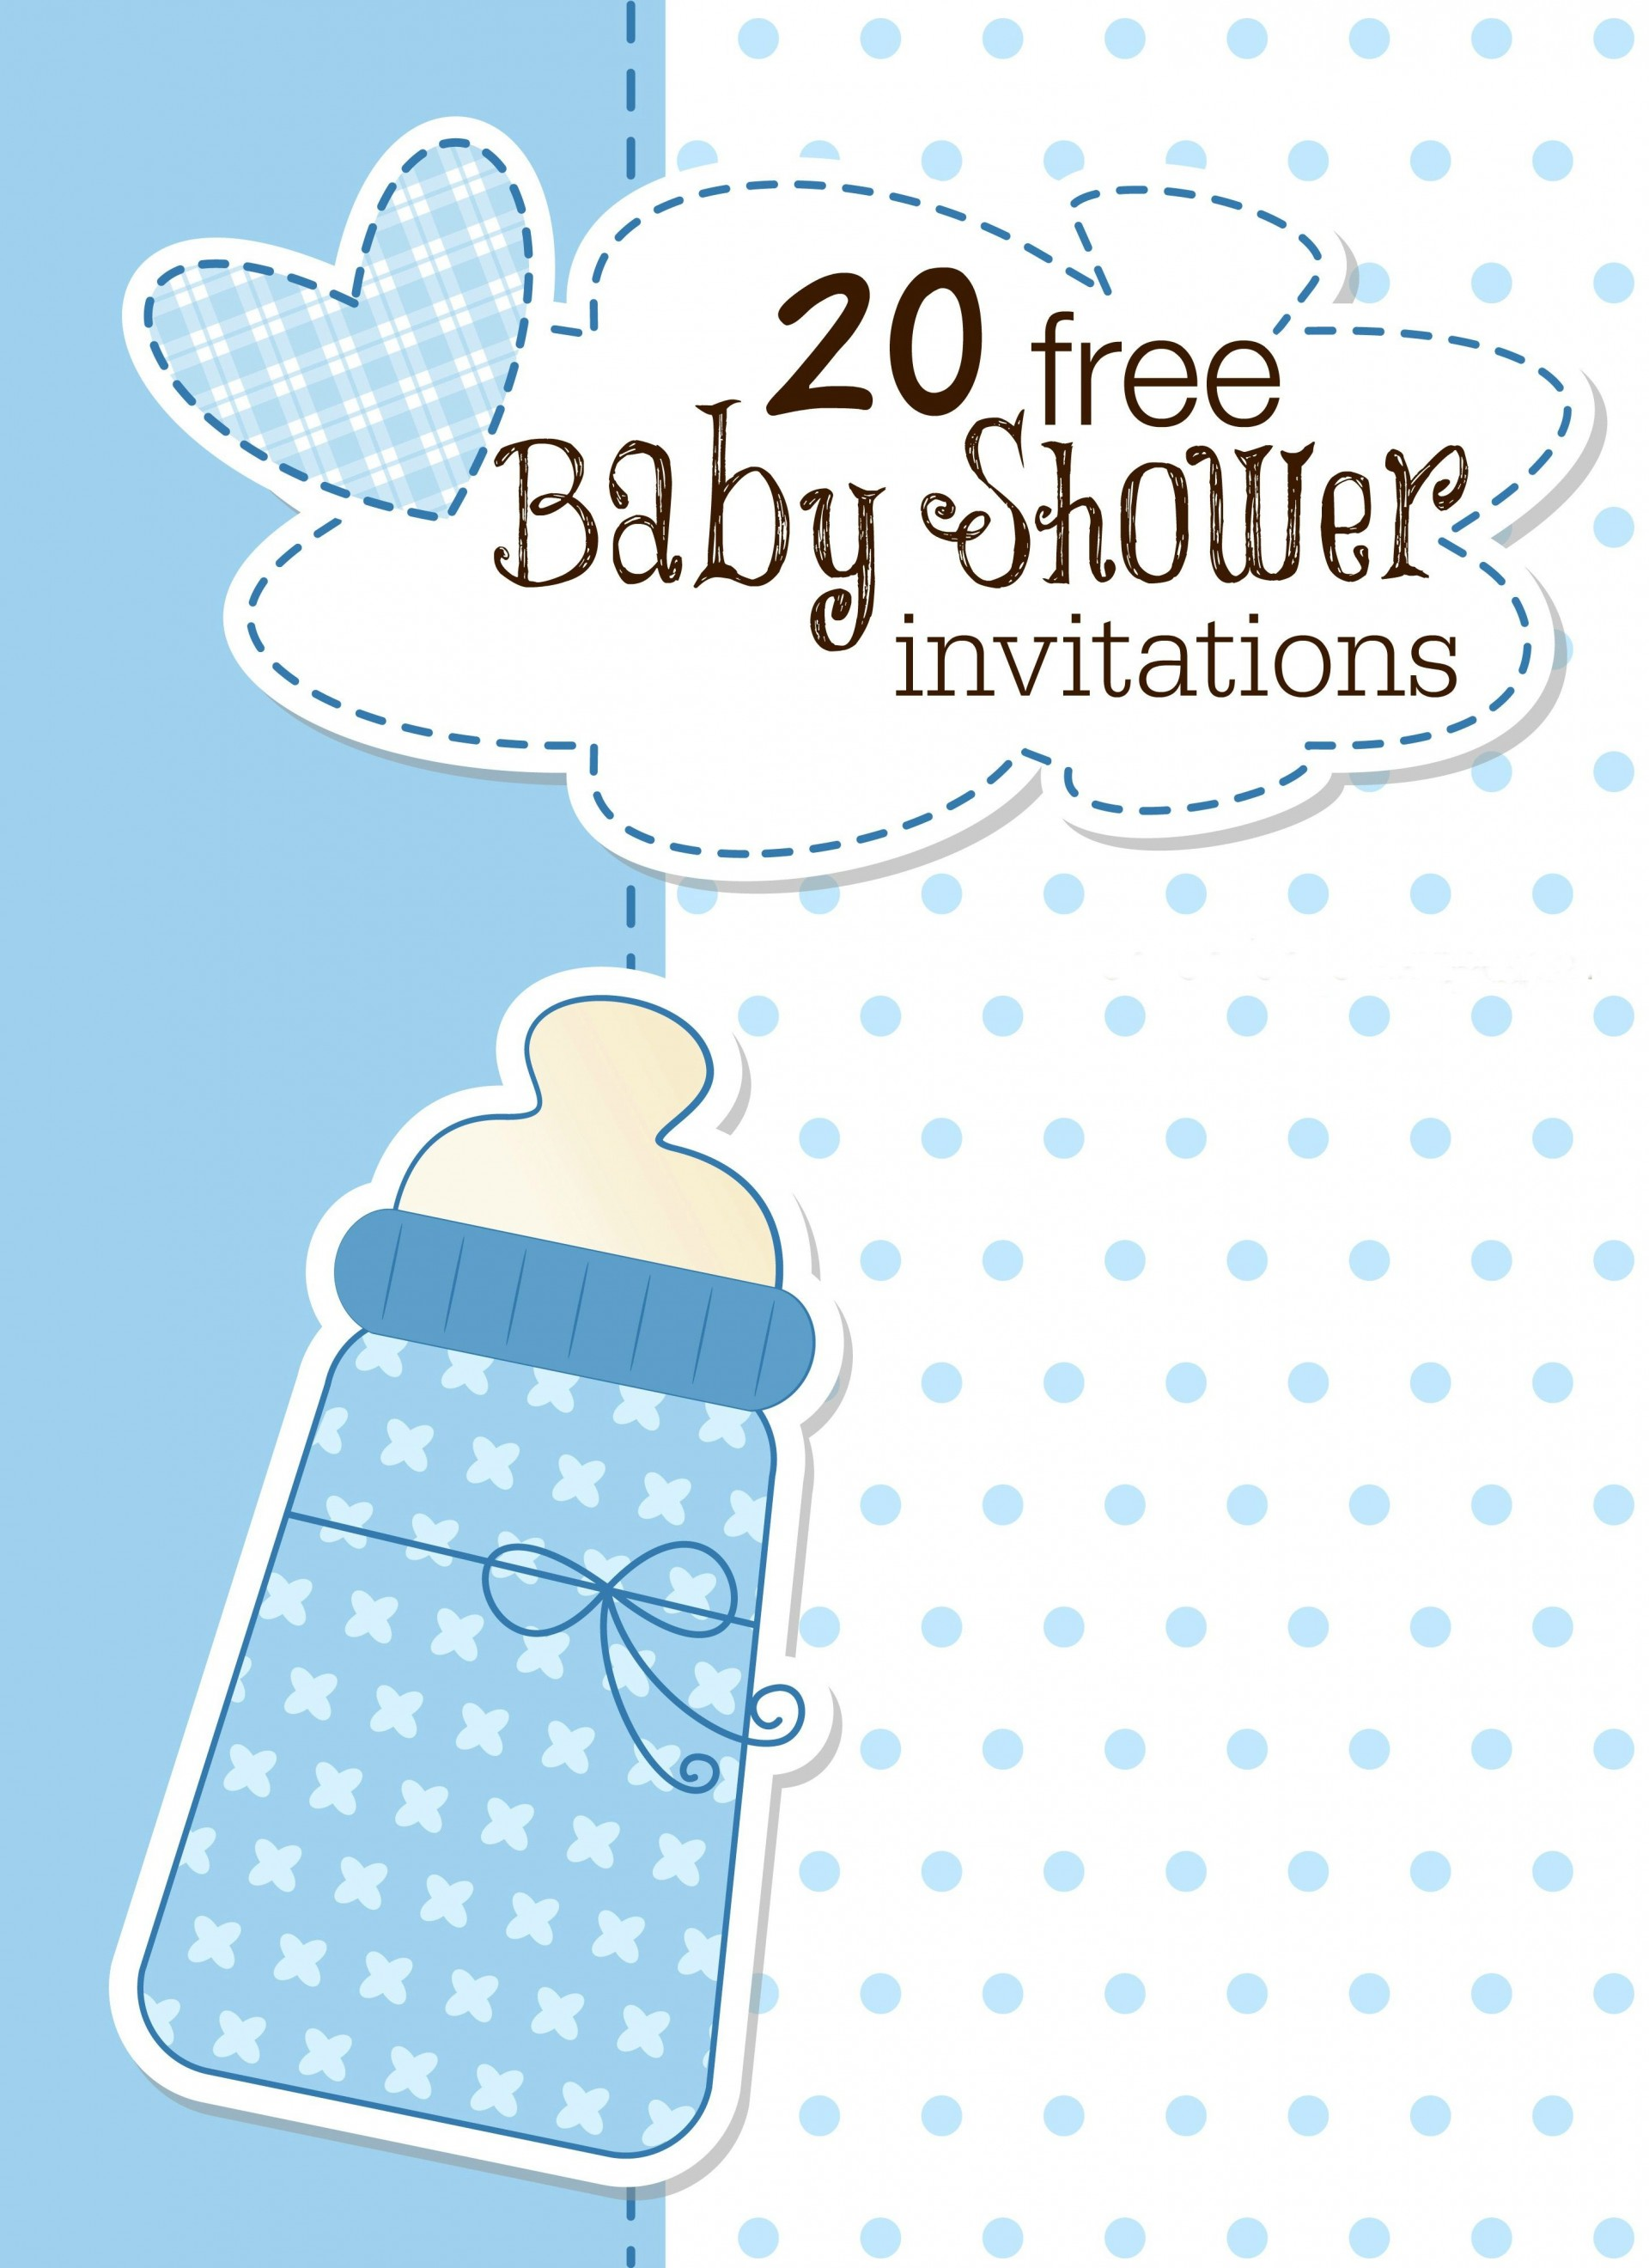 007 Amazing Free Baby Shower Printable Boy Example  Oh Invitation For1920